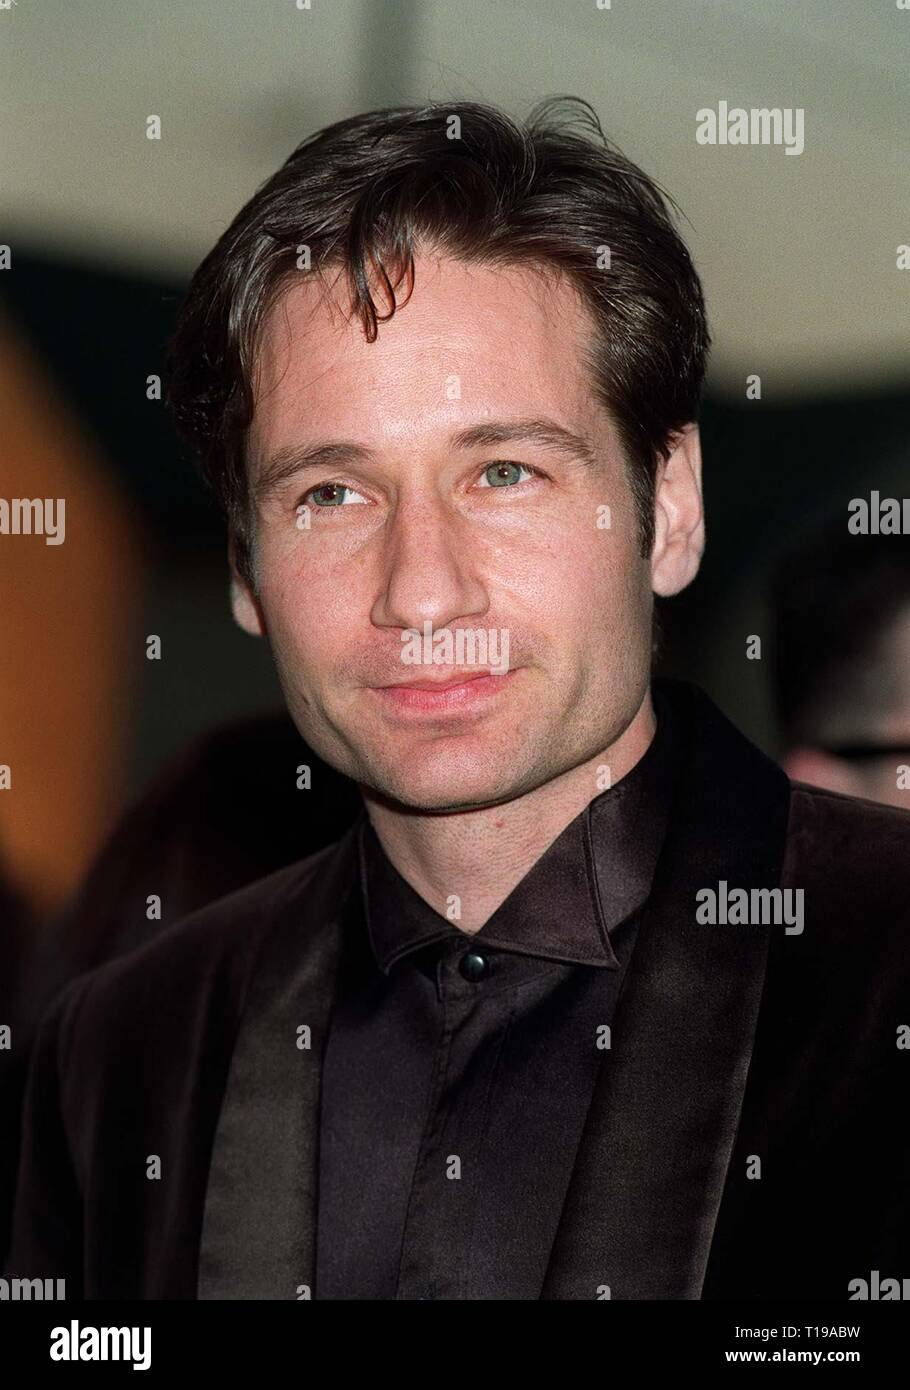 LOS ANGELES, CA. February 23, 1997: X-Files star DAVID DUCHOVNY at the Screen Actors Guild Awards.   Pix: PAUL SMITH - Stock Image